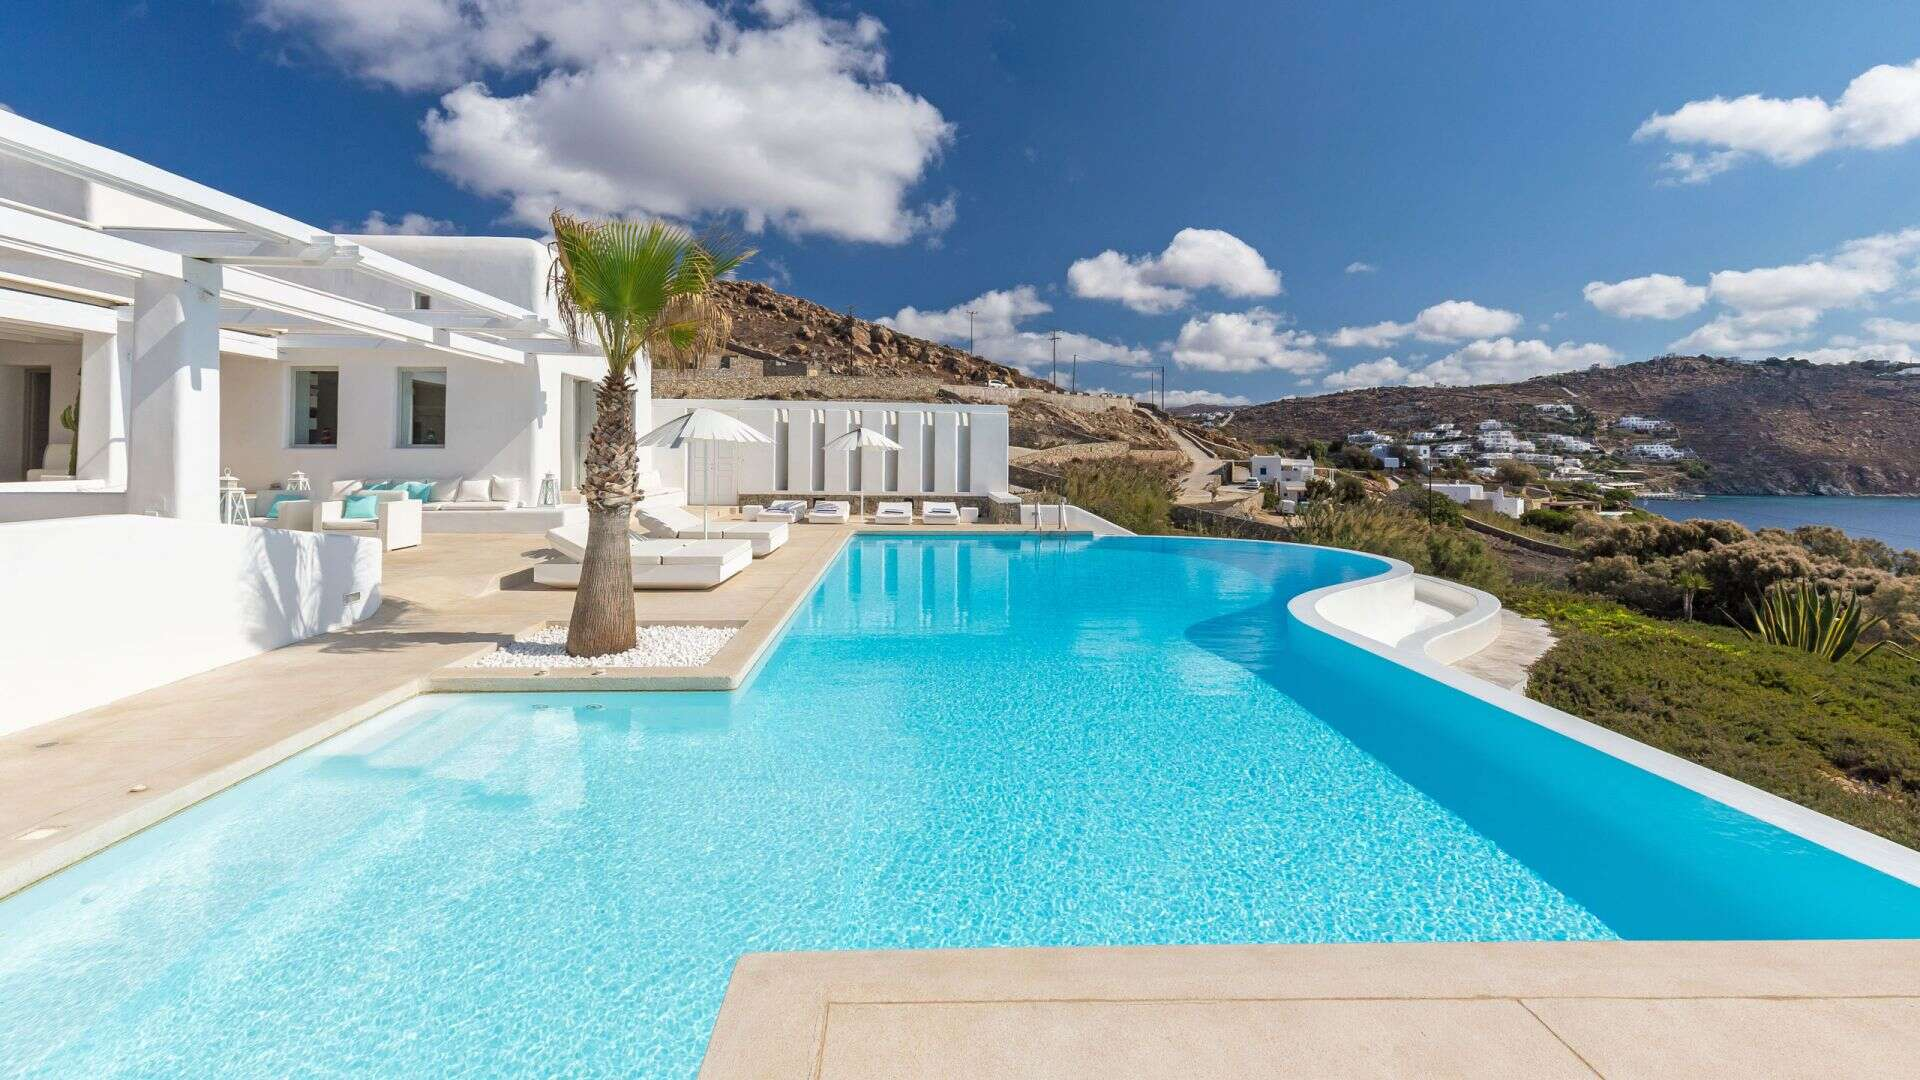 Luxury vacation rentals europe - Greece - Mykonos - Aleomandra - South Cove Dream - Image 1/18